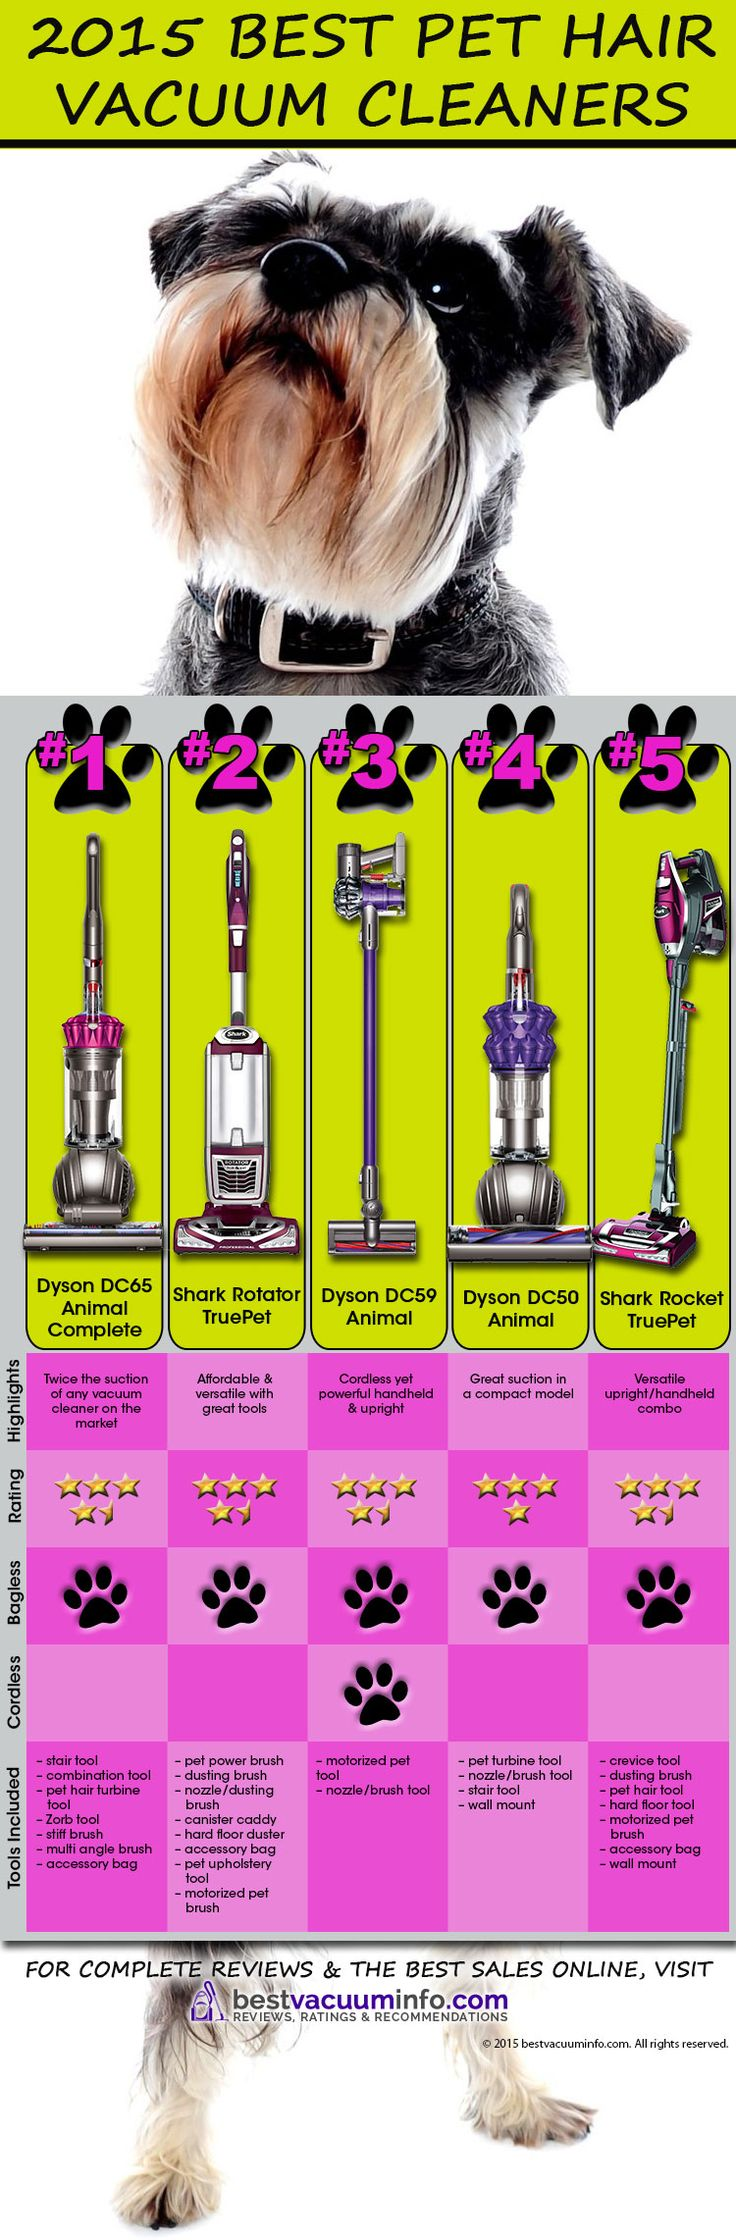 Best Vacuums for Pet Hair - 2015 Infographic See reviews of all the best pet hair vacuums currently on the market.